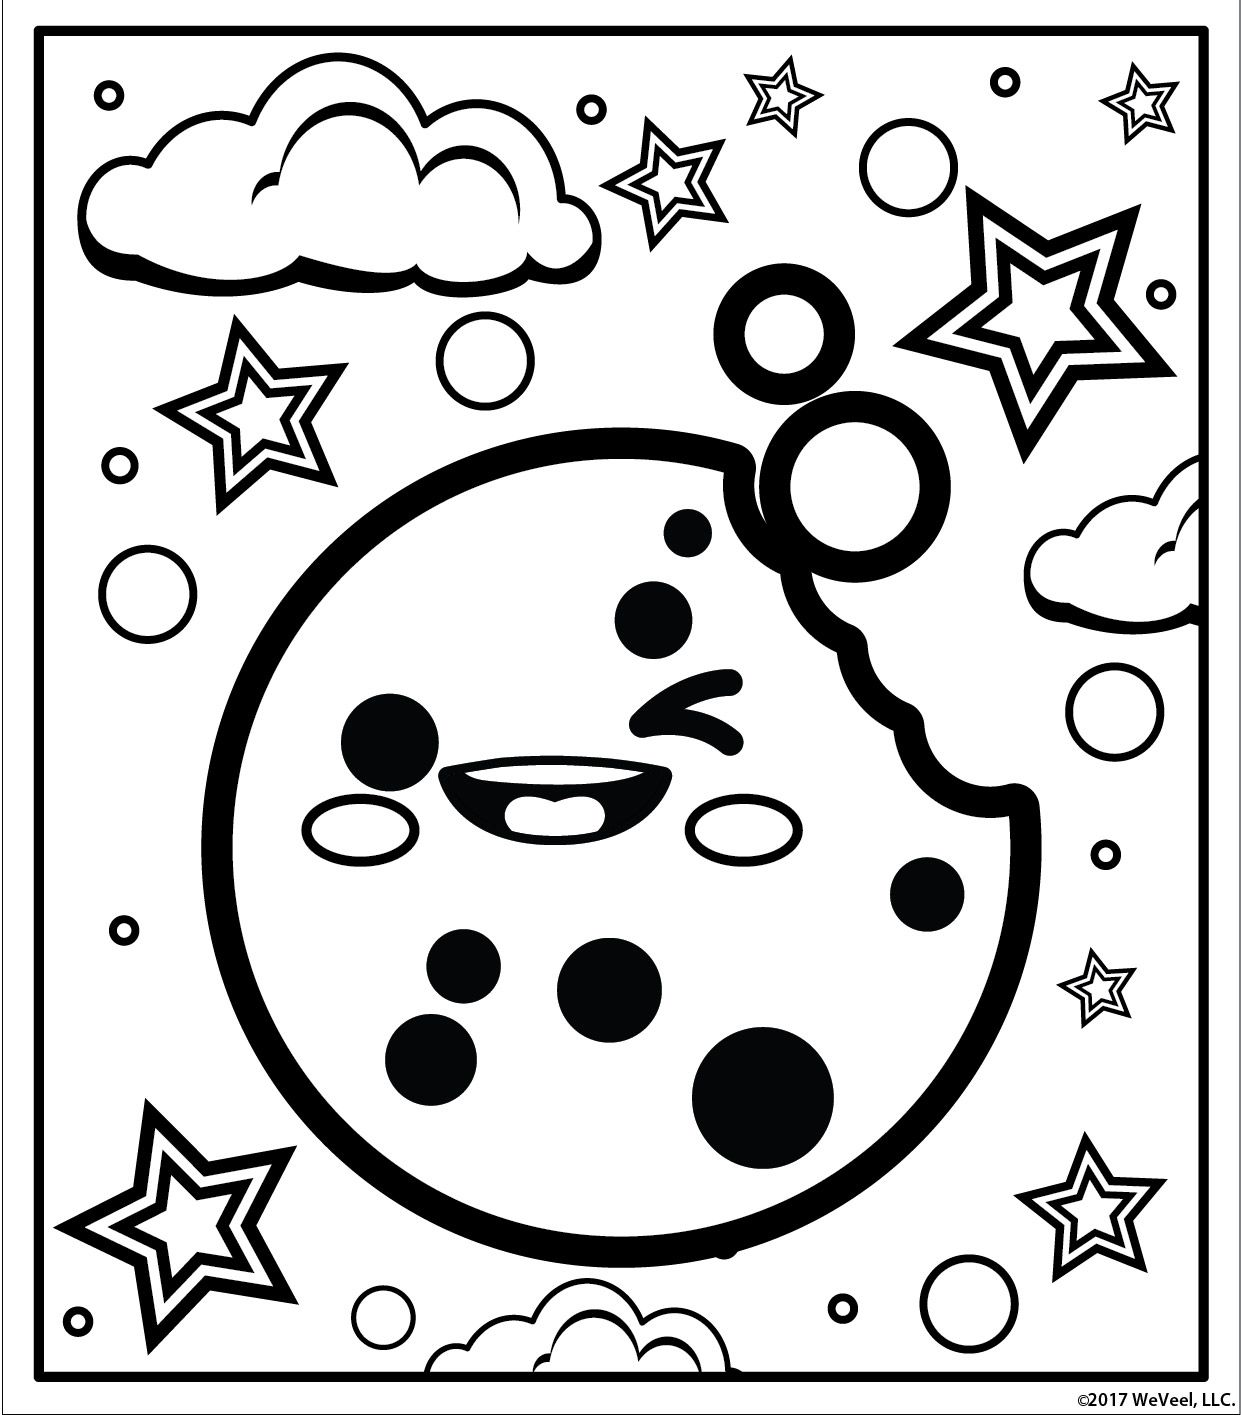 Cute Girl Coloring Pages To Download And Print For Free Spring Time Coloring Pages Downlo Cute Coloring Pages Candy Coloring Pages Coloring Pages For Girls